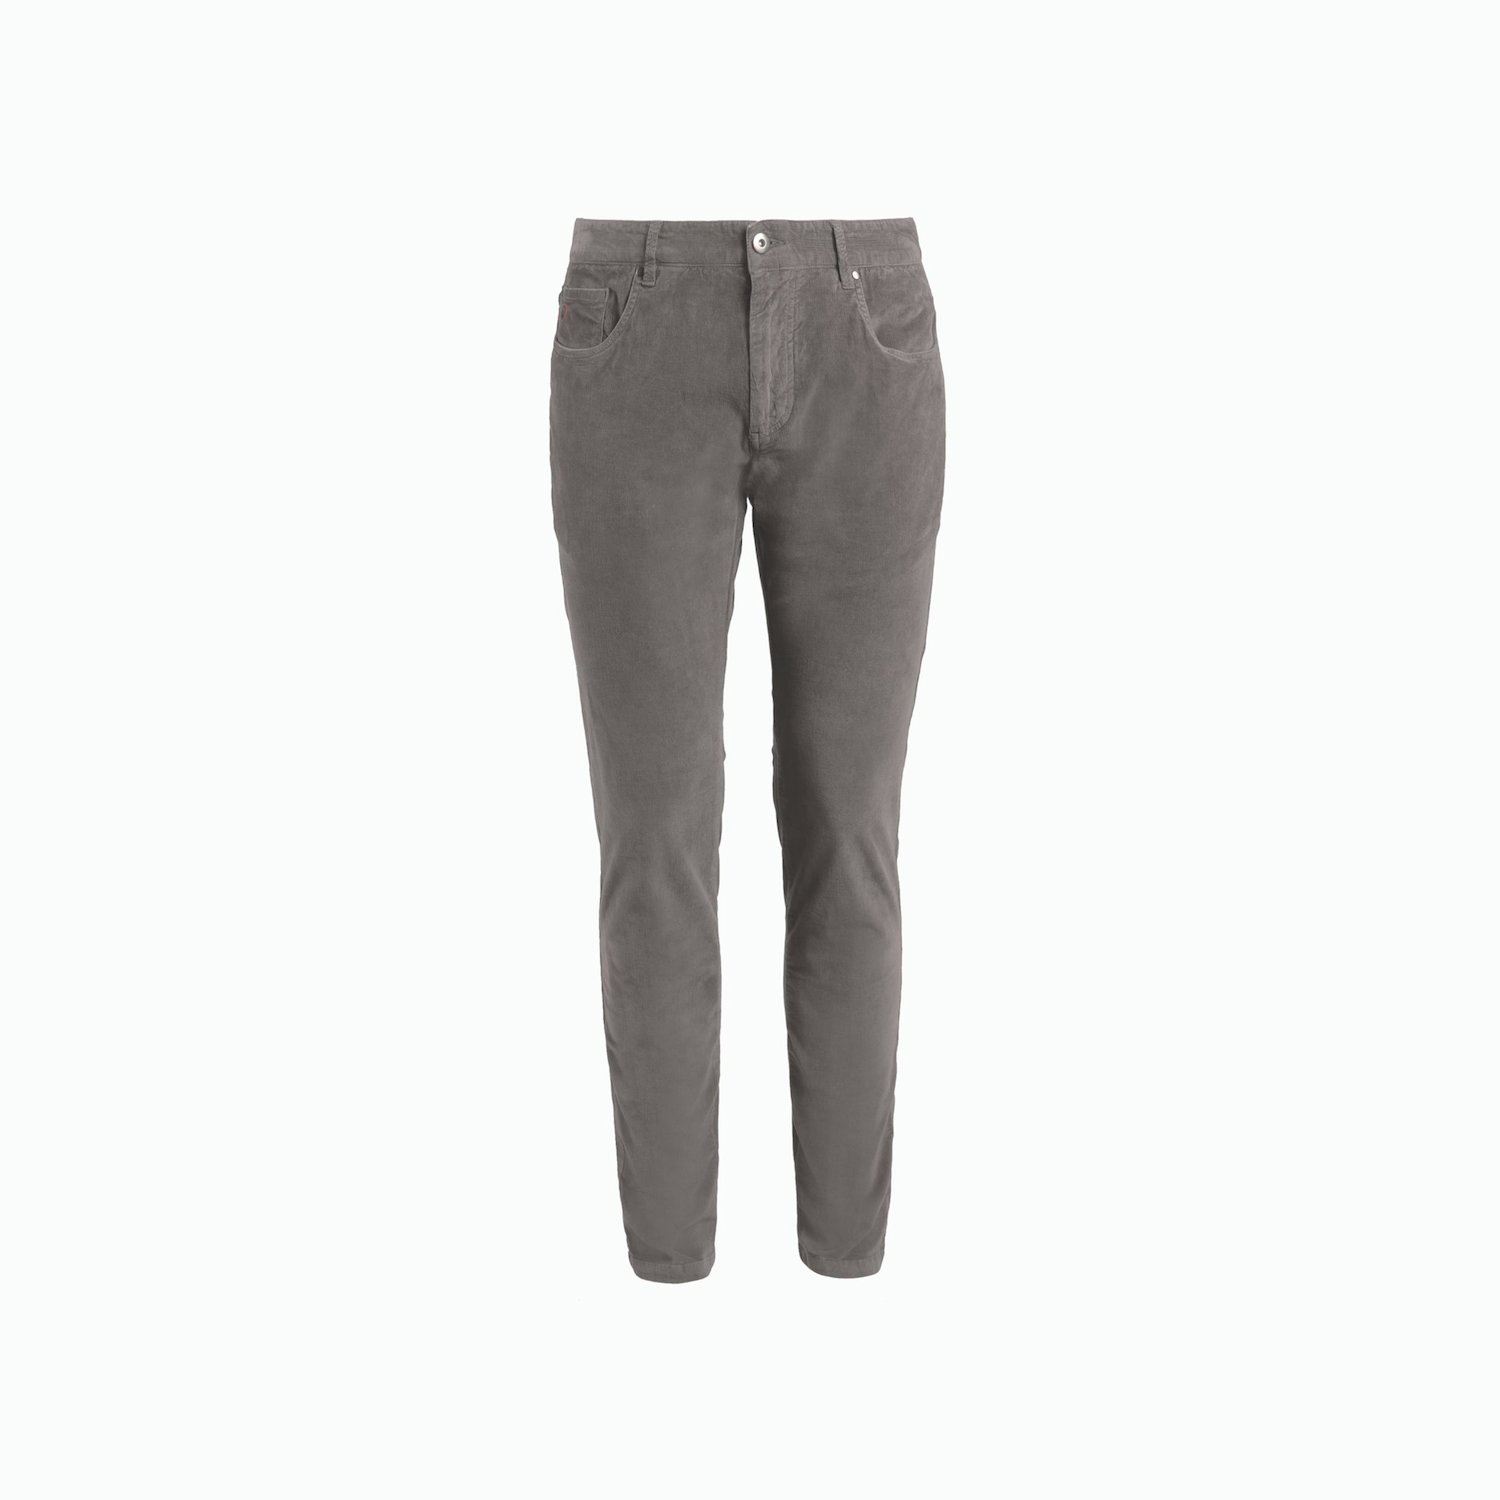 B10 Trousers - Anthracite